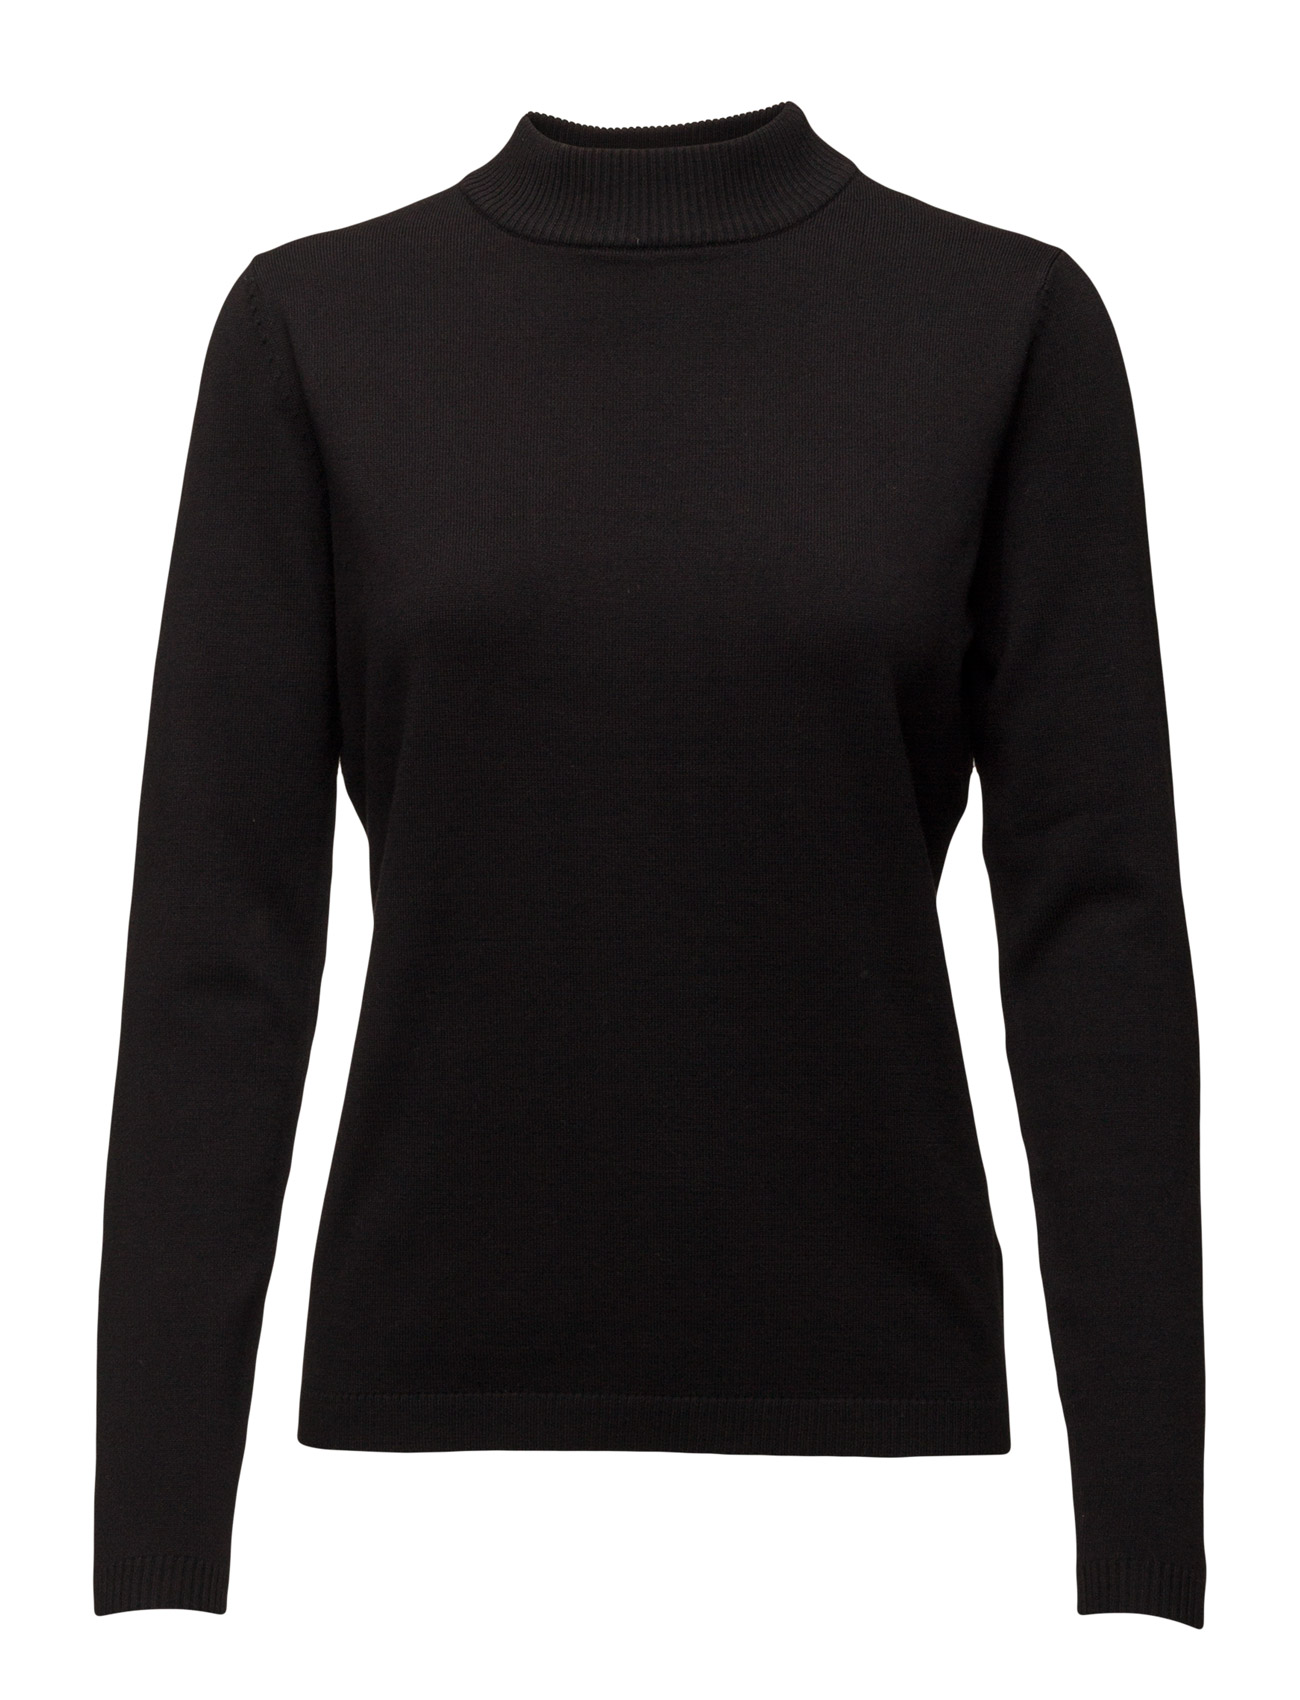 eea427f42de Zara Turtleneck (001 Black) (£34.95) - Soft Rebels -